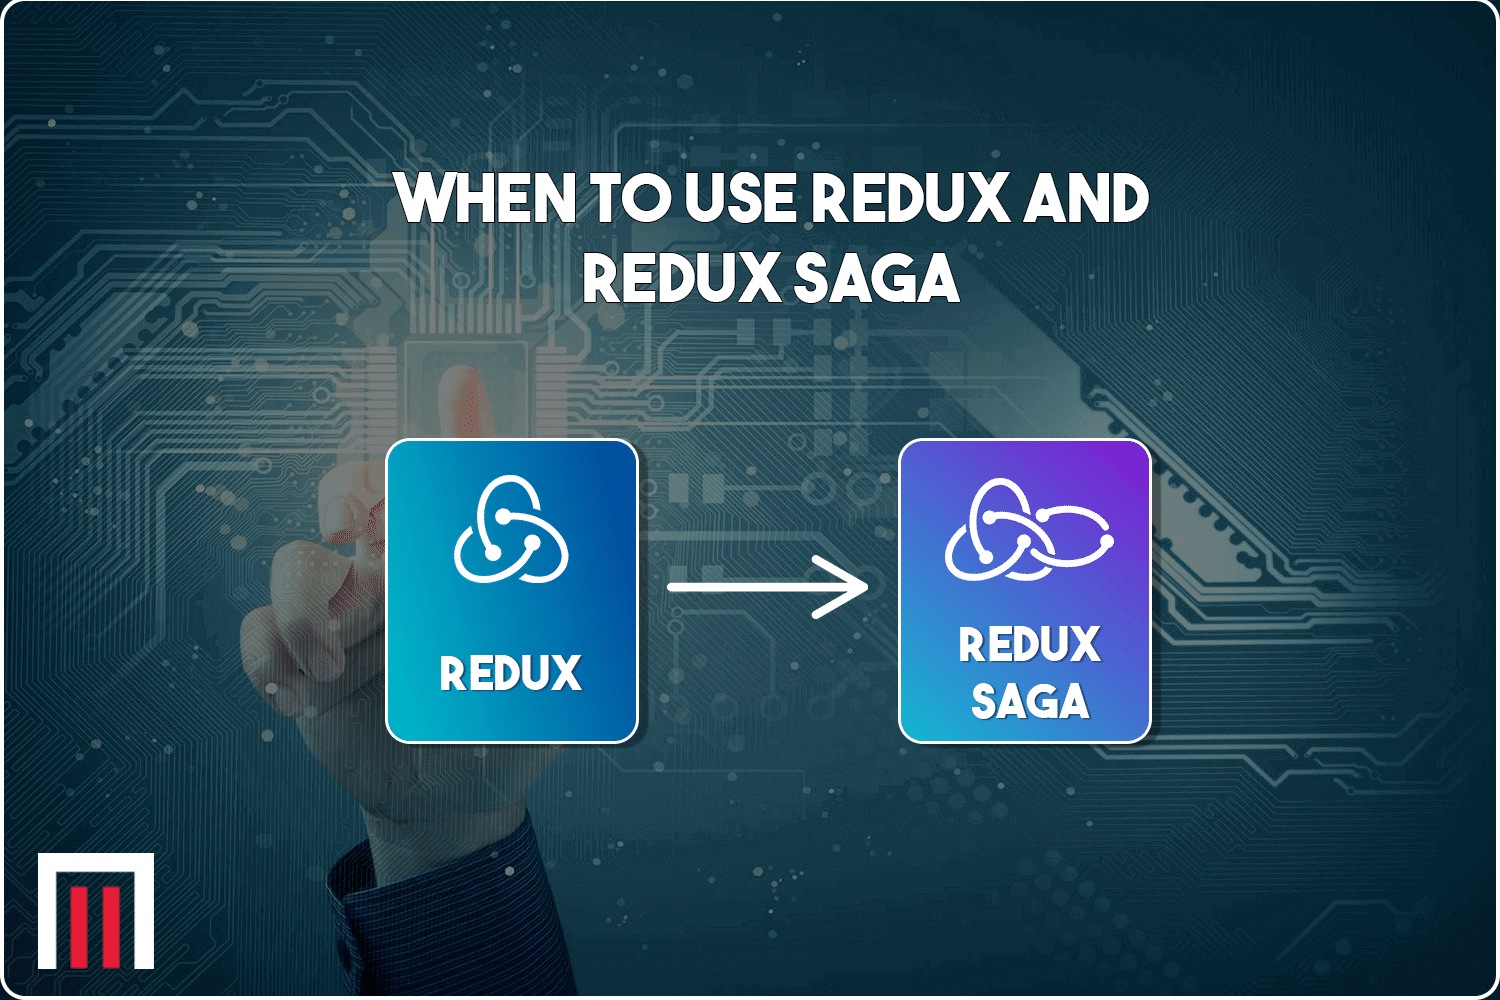 When to use redux and redux saga